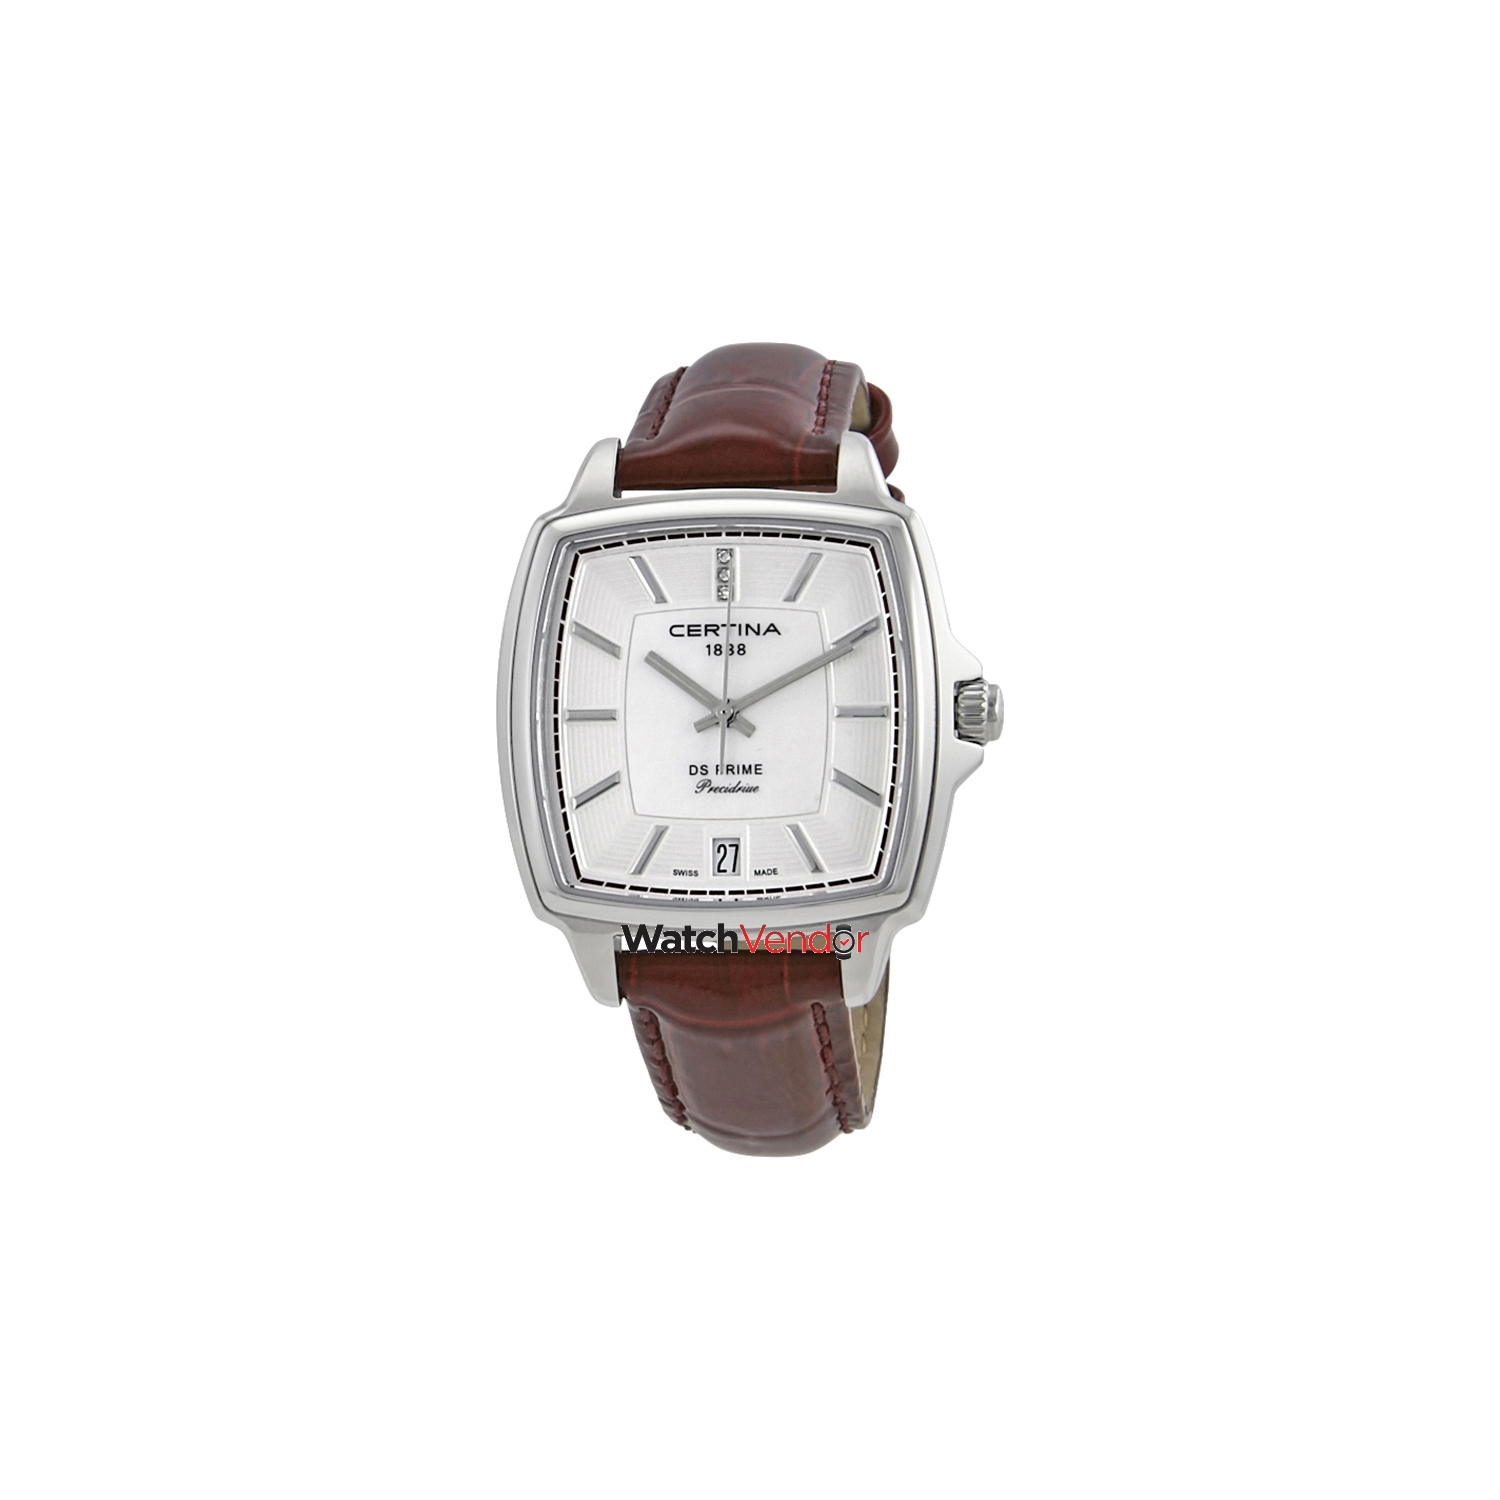 Certina DS Prime Mother Of Pearl Dial Leather Ladies Watch  C028.310.16.426.00 - Online Only ec09fc7db28